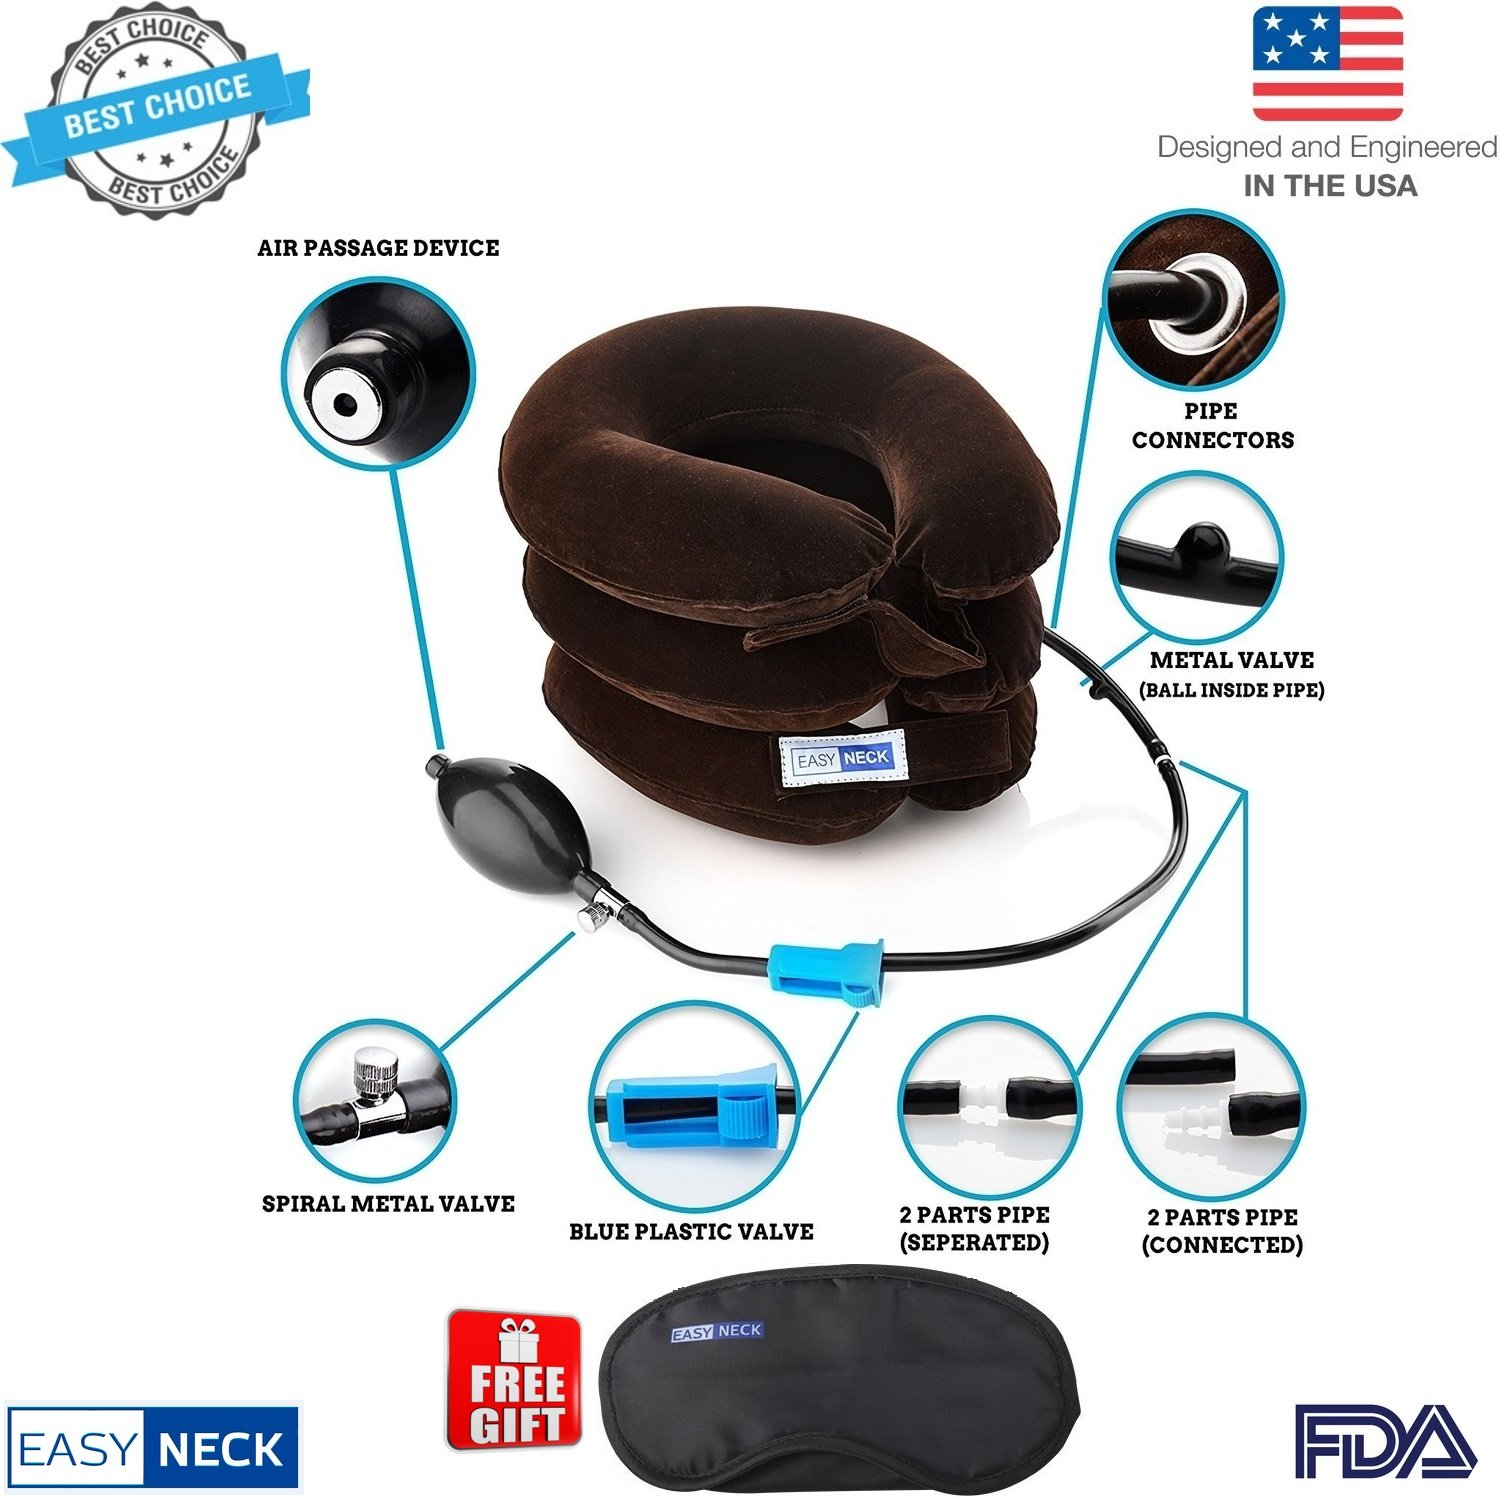 EasyNeck Cervical Neck Traction Device FDA Registered ✮ Inflatable & Adjustable Neck Stretcher Collar for Home Traction Spine Alignment